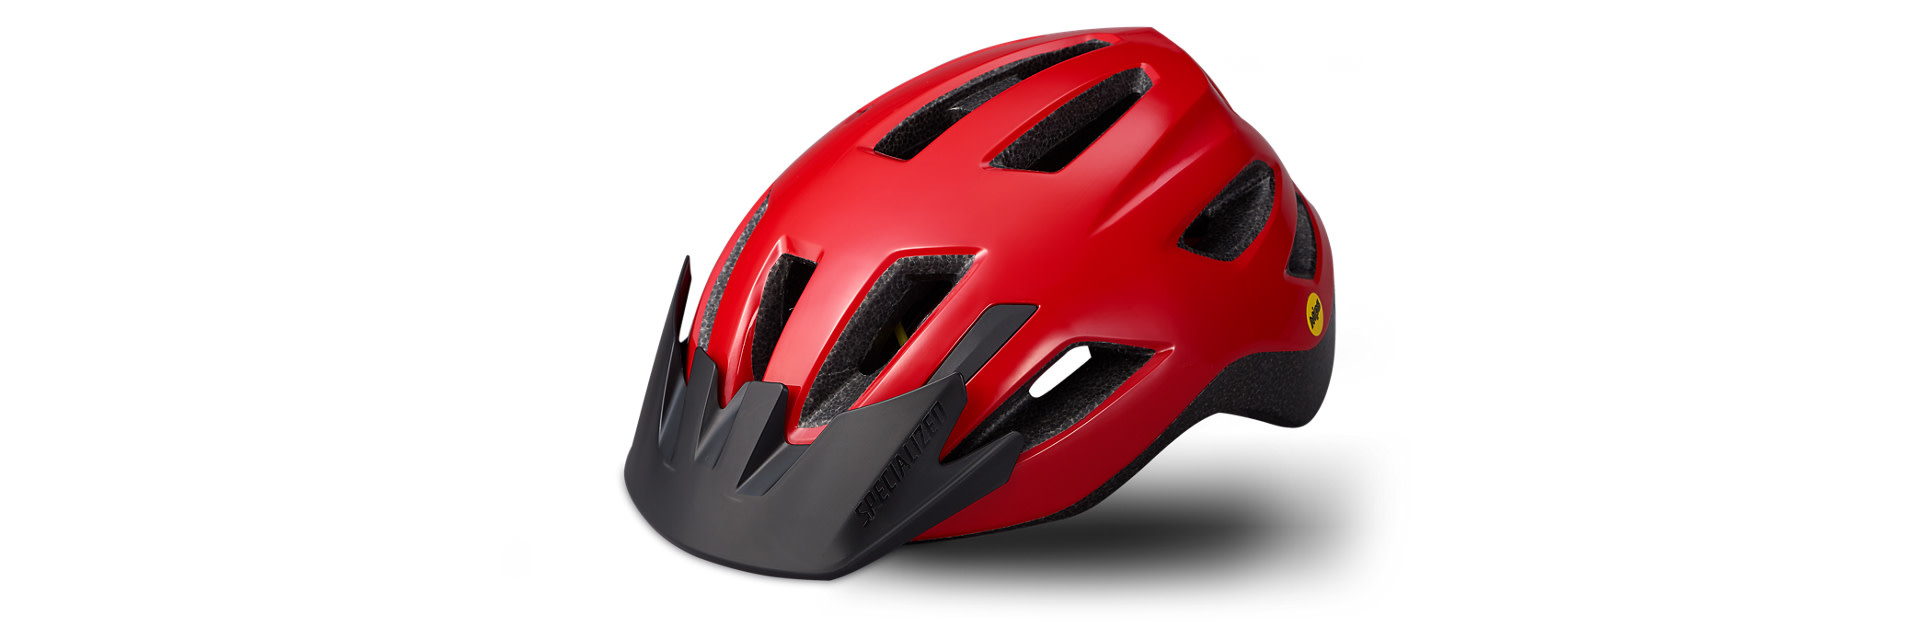 Specialized Helmet Shuffle Youth LED MIPS Red